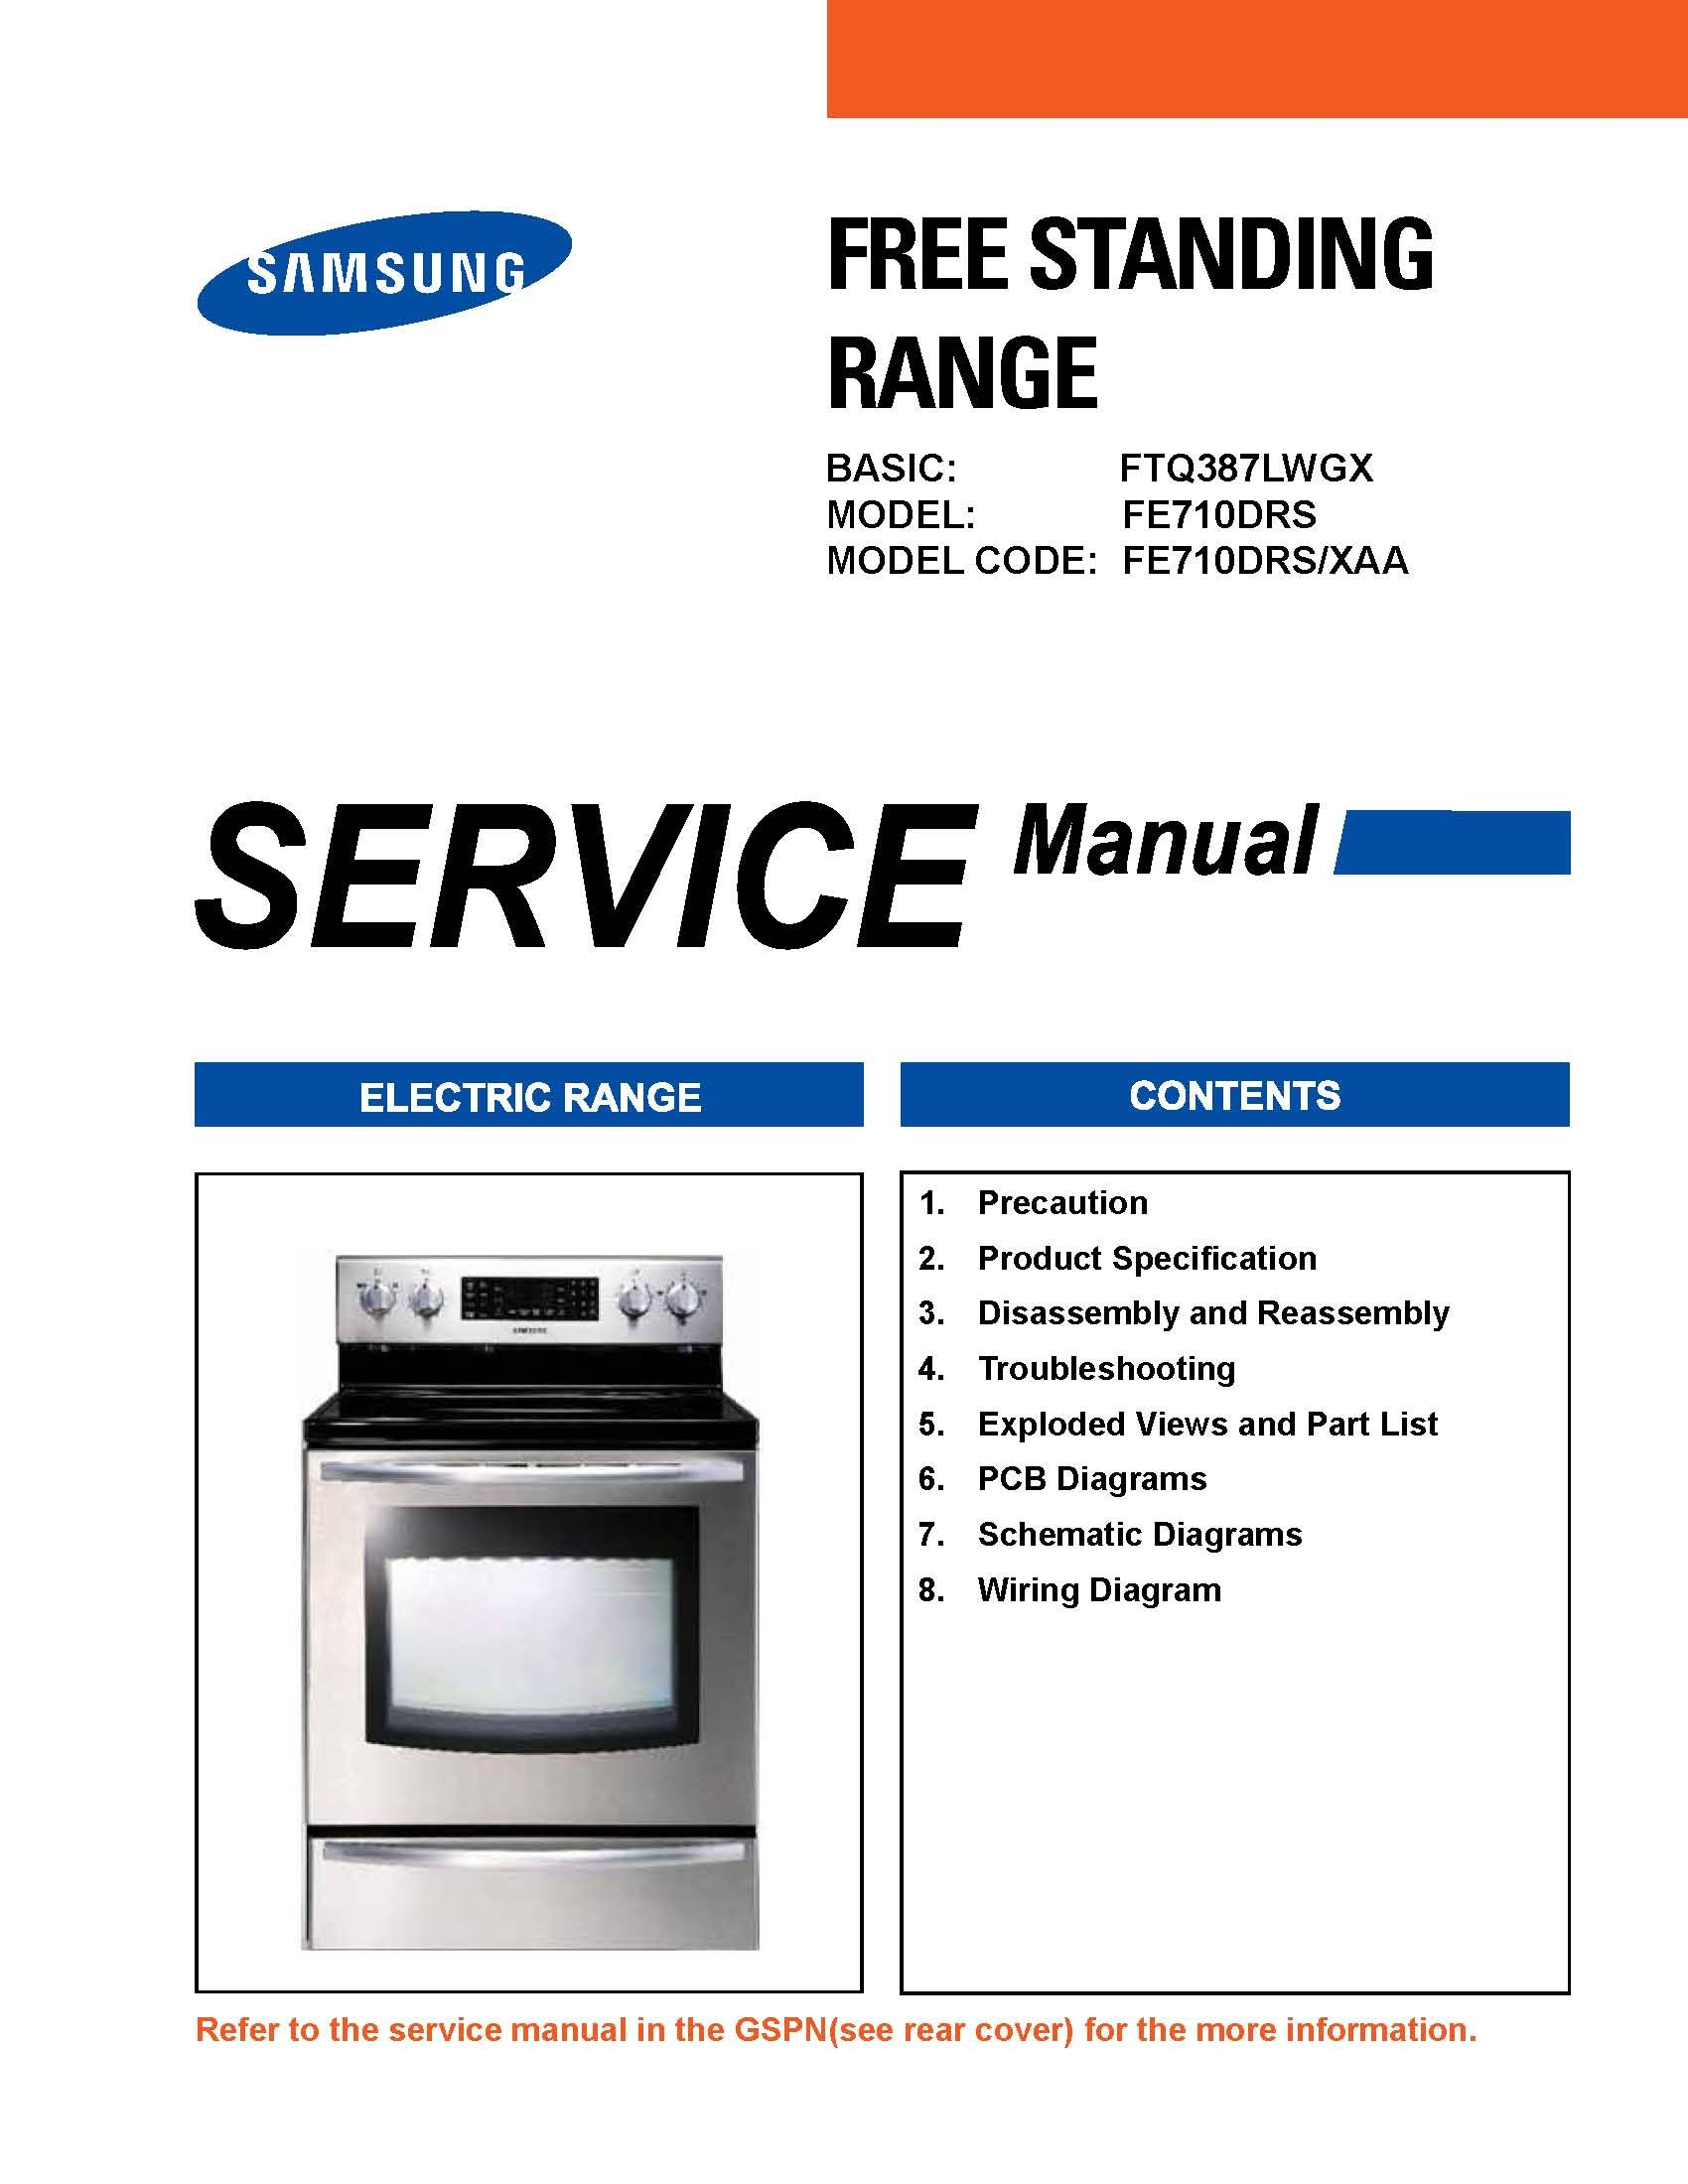 samsung fe710drs service manual repair guide